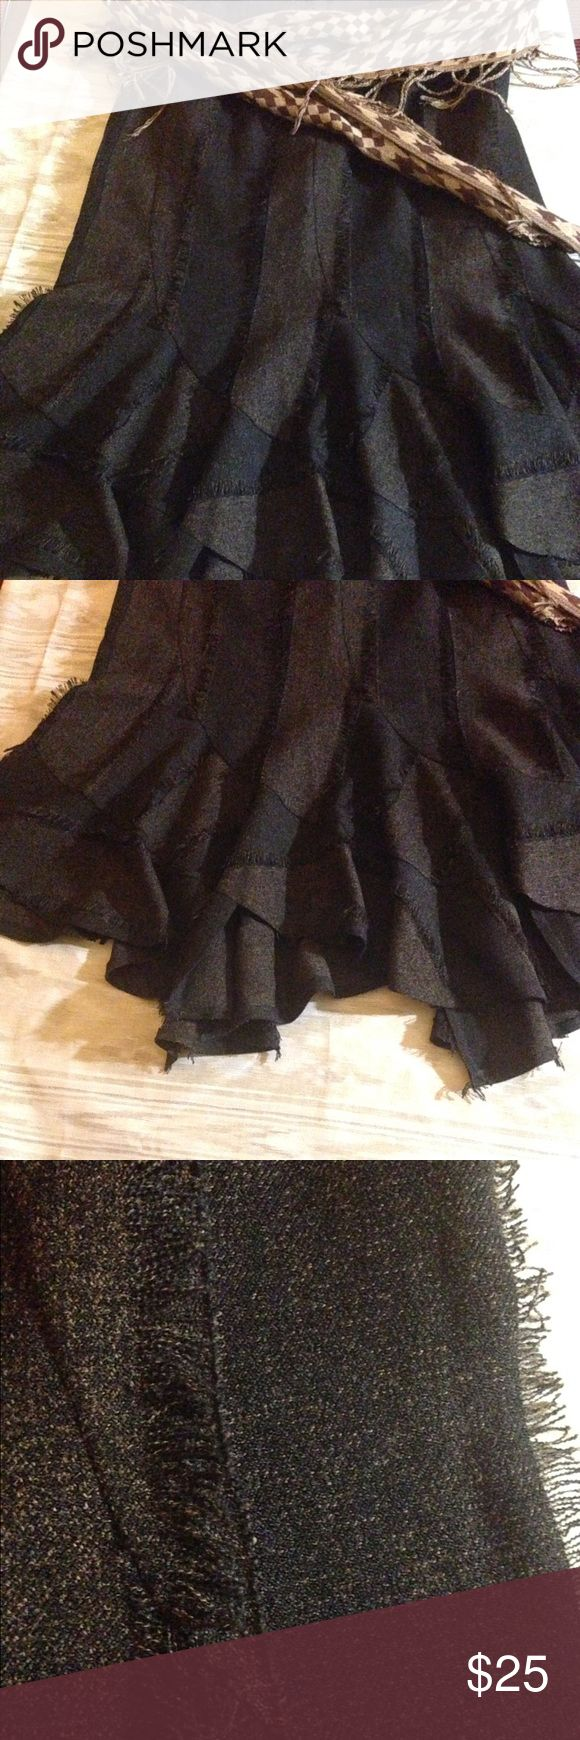 """Handkerchief Skirt This year """"Frayed"""" is in!  This well constructed skirt has a fluted silhouette that creates beautiful movement with each step you take. It has a concealed zipper in the back and is fully lined . Able to take you from the boardroom to the ballroom!  70% Polyester and 30% Rayon 31"""" long Skirts Midi"""